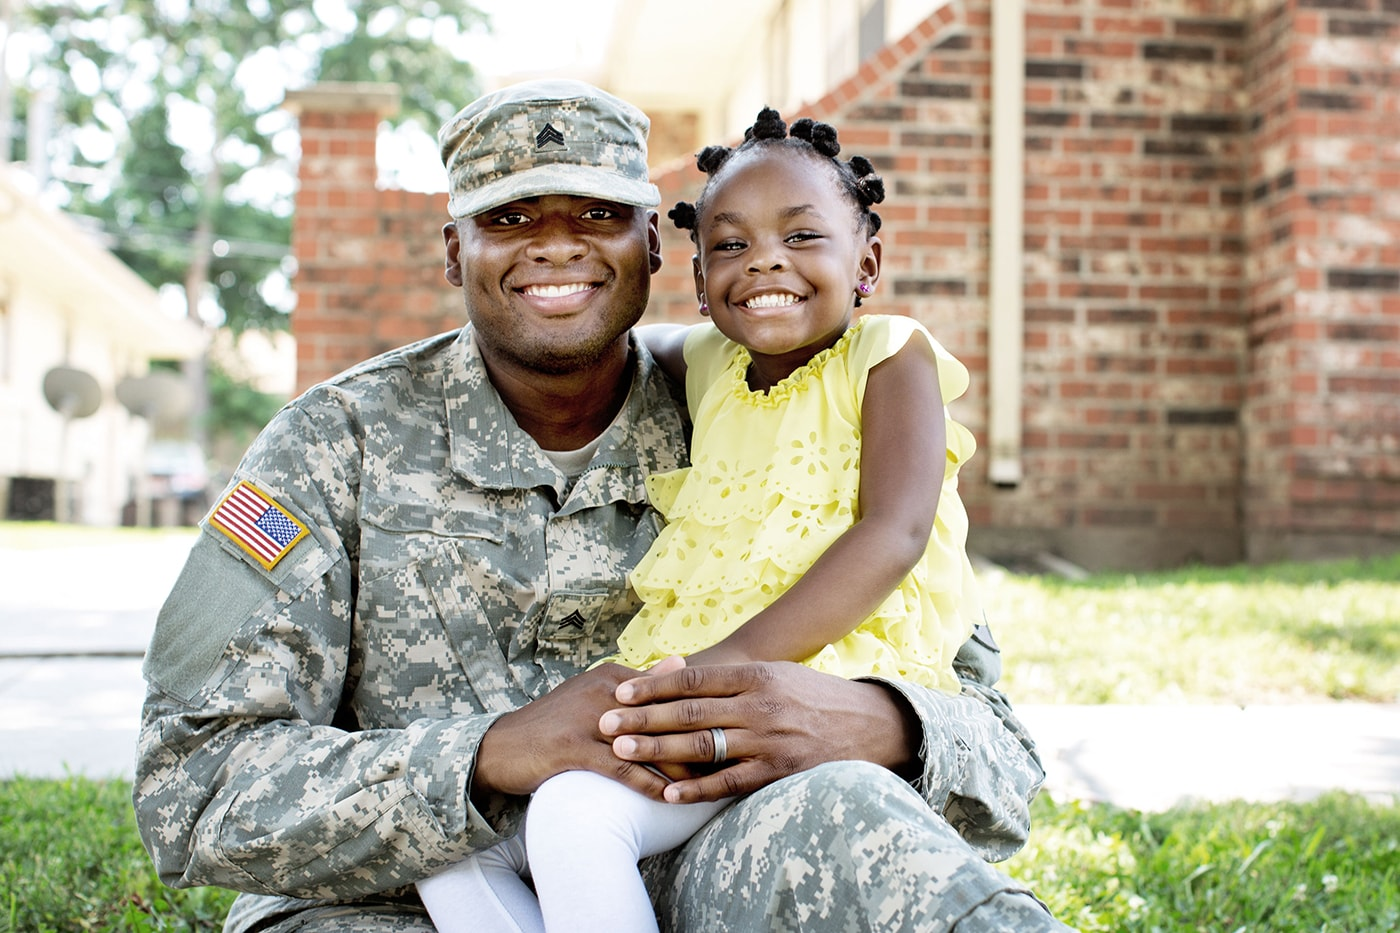 Best Loans for Veterans and Active Military Members article image.